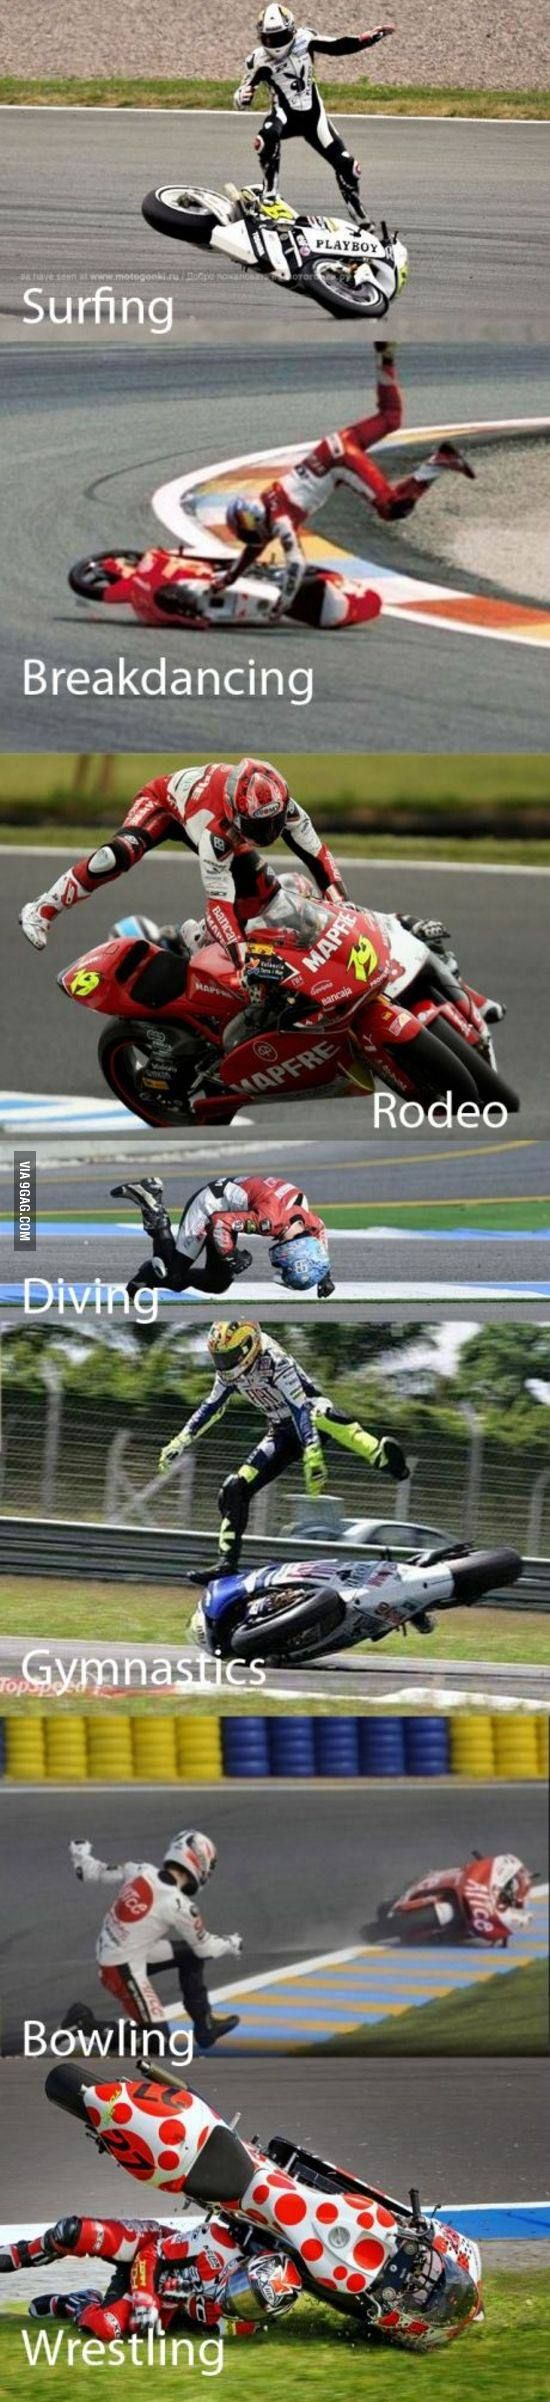 Moto gp... and other activities.